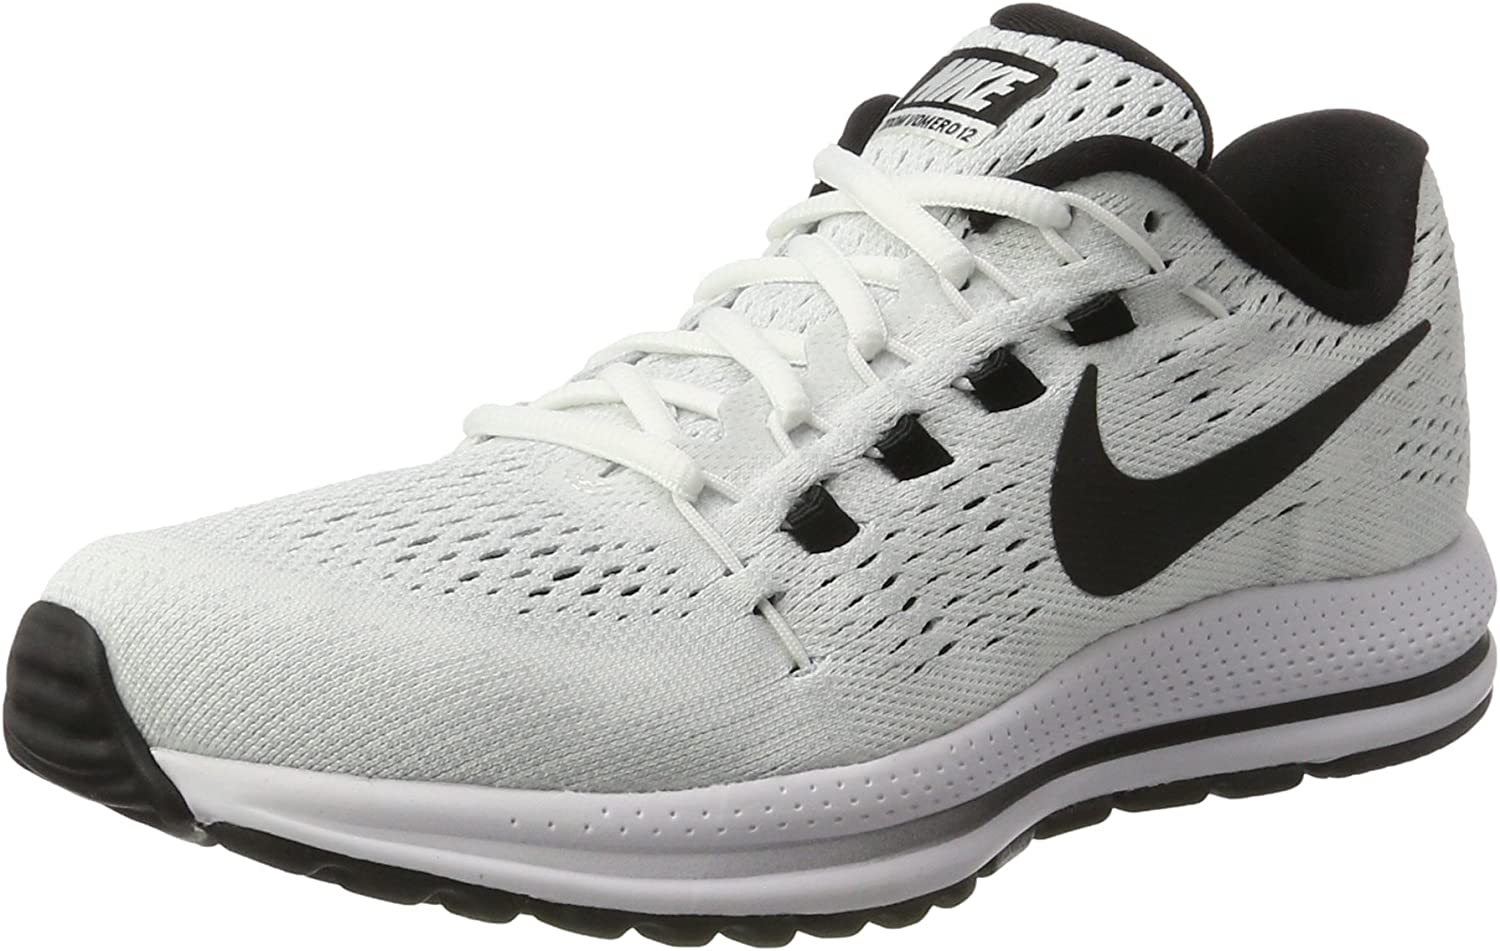 Nike Air Zoom Vomero 12 Sz 13 Mens Running White Black-Pure Platinum shoes